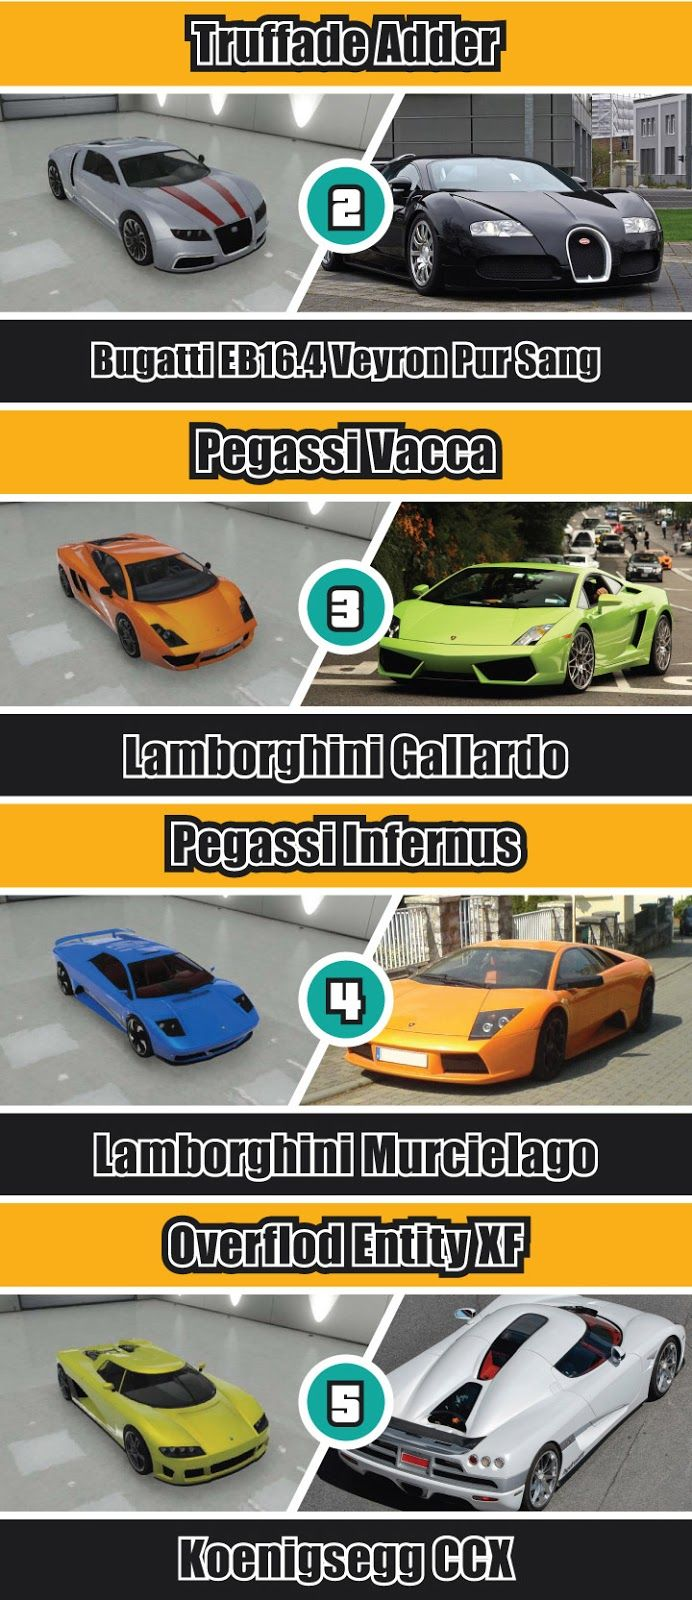 Google chrome theme gta v - Check Out 50 Gta V Cars And Their Real Life Counterparts In Massive Infographic